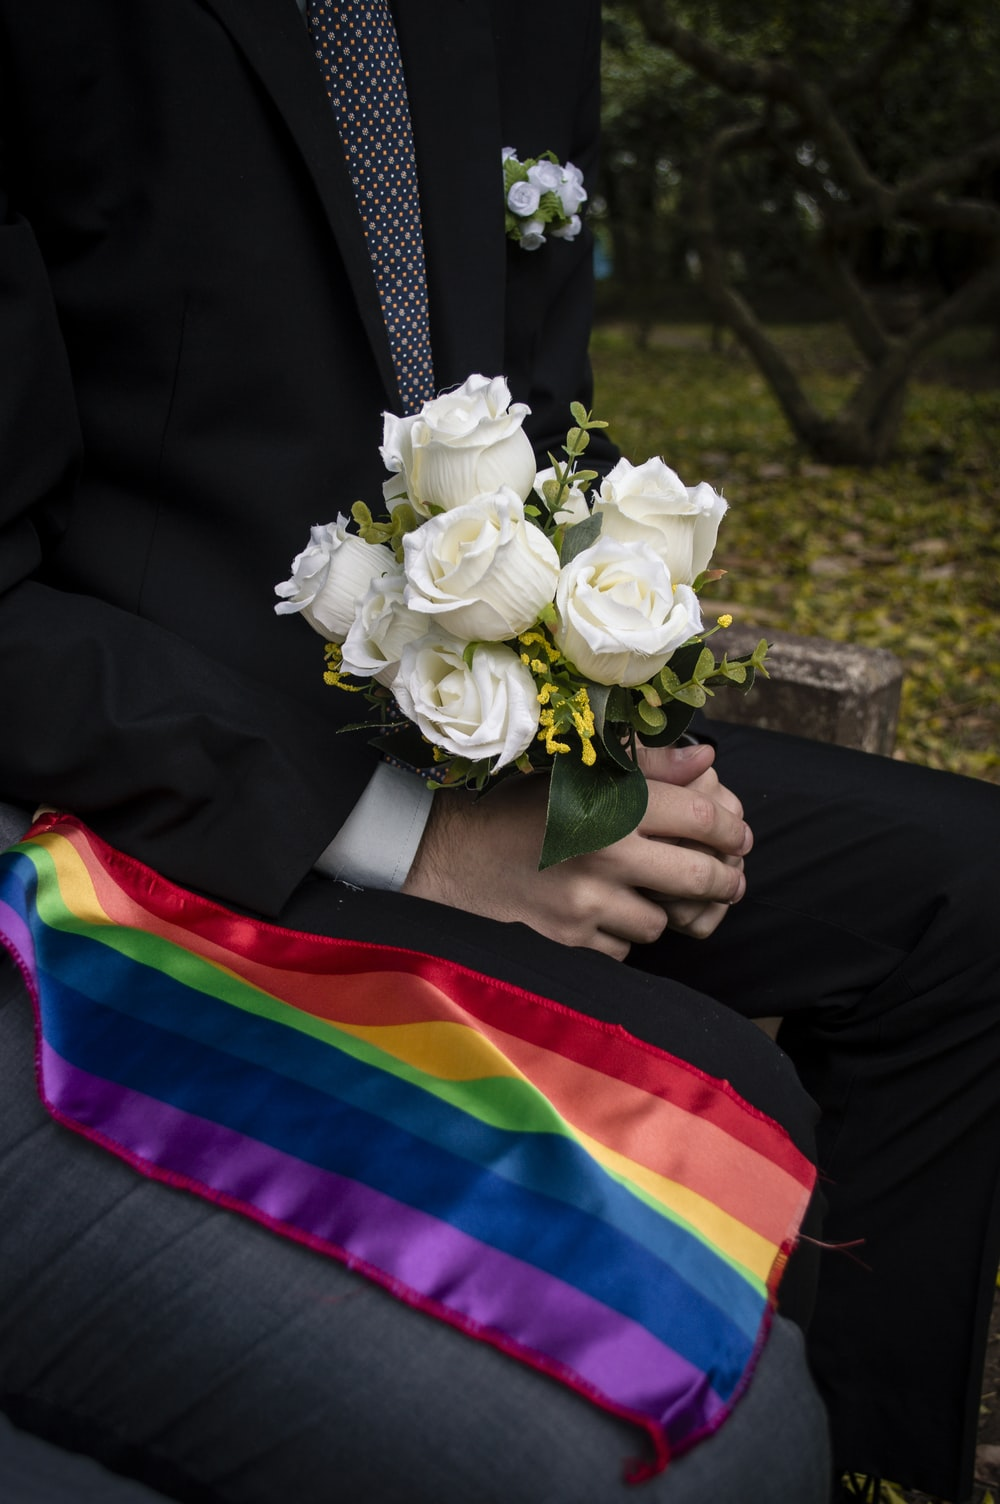 person holding white rose bouquet